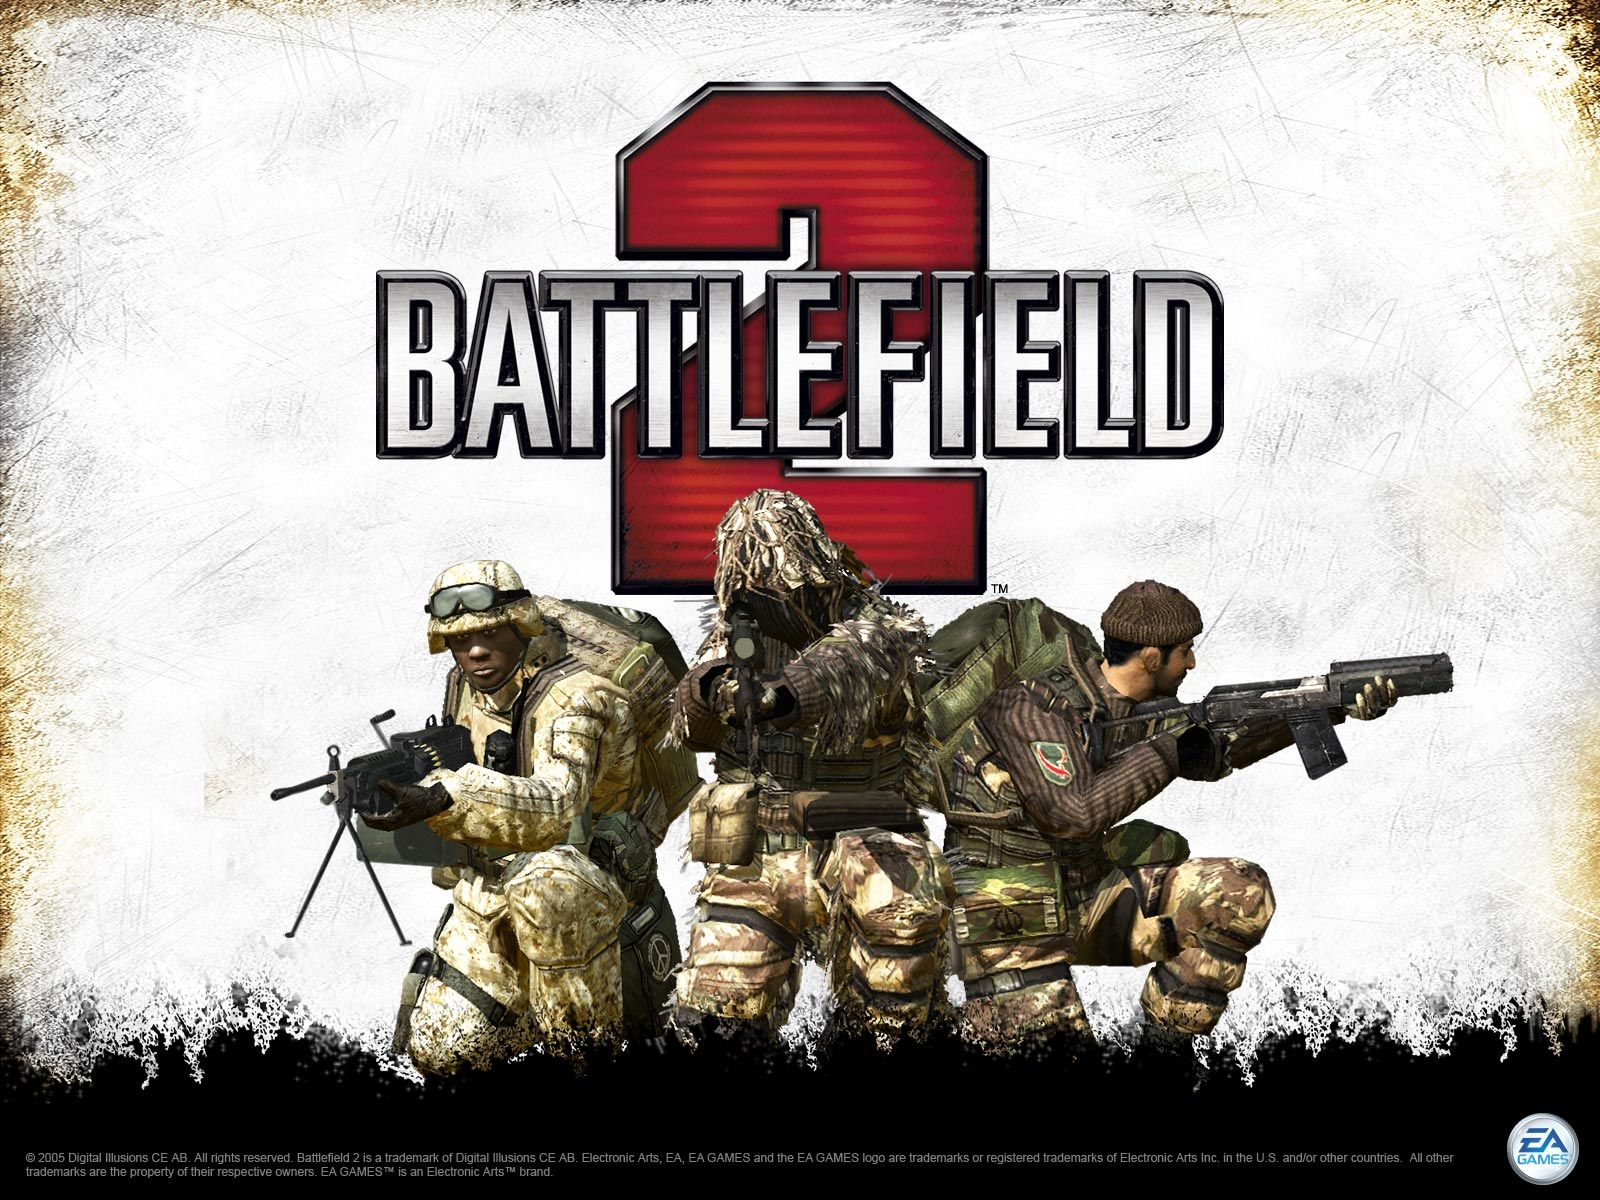 Battlefield 2 Free Download Full Version Pc Game With Images